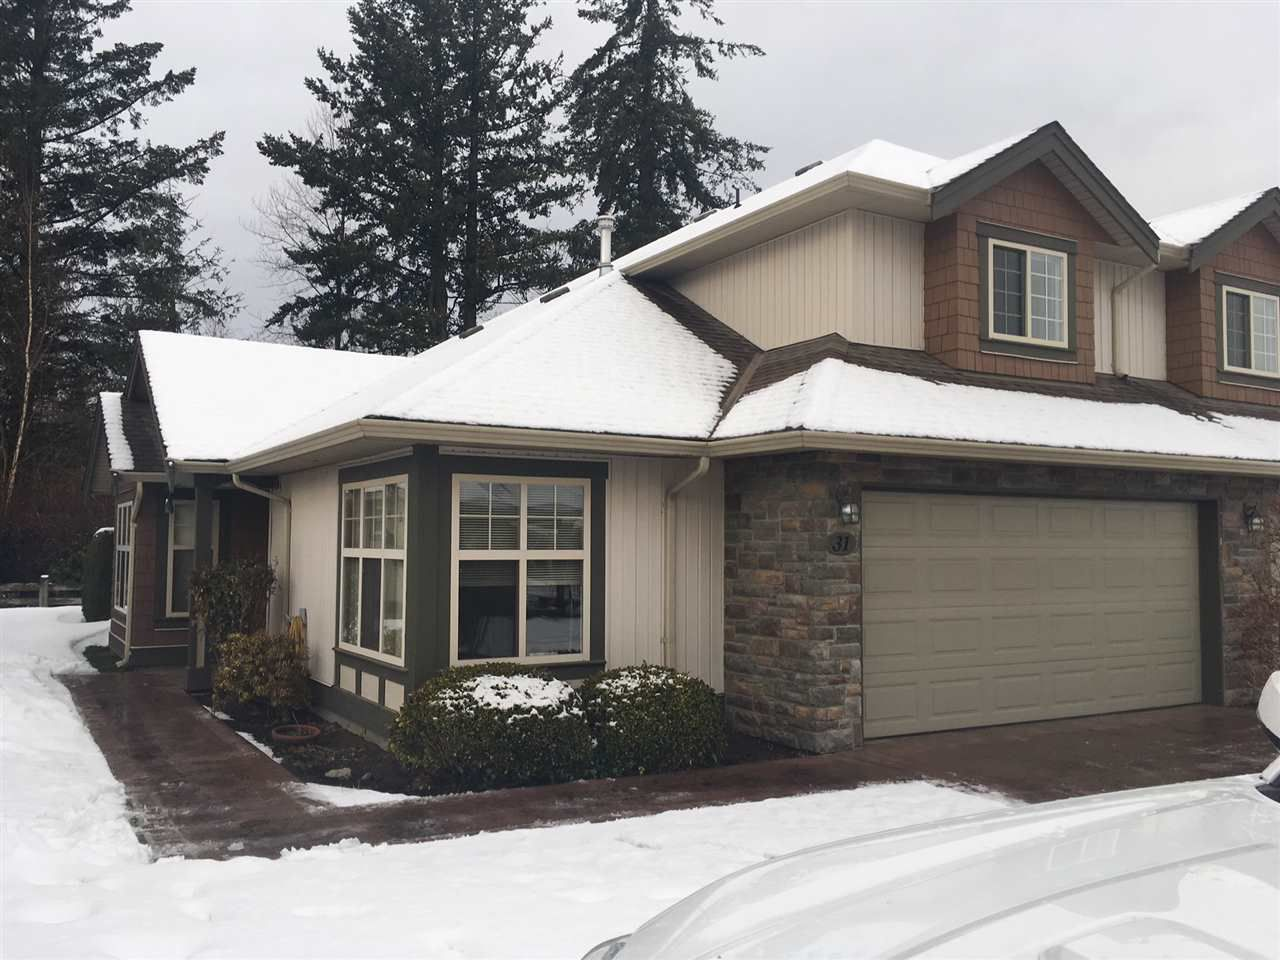 """Main Photo: 31 6887 SHEFFIELD Way in Sardis: Sardis East Vedder Rd Townhouse for sale in """"Parksfield"""" : MLS®# R2342885"""